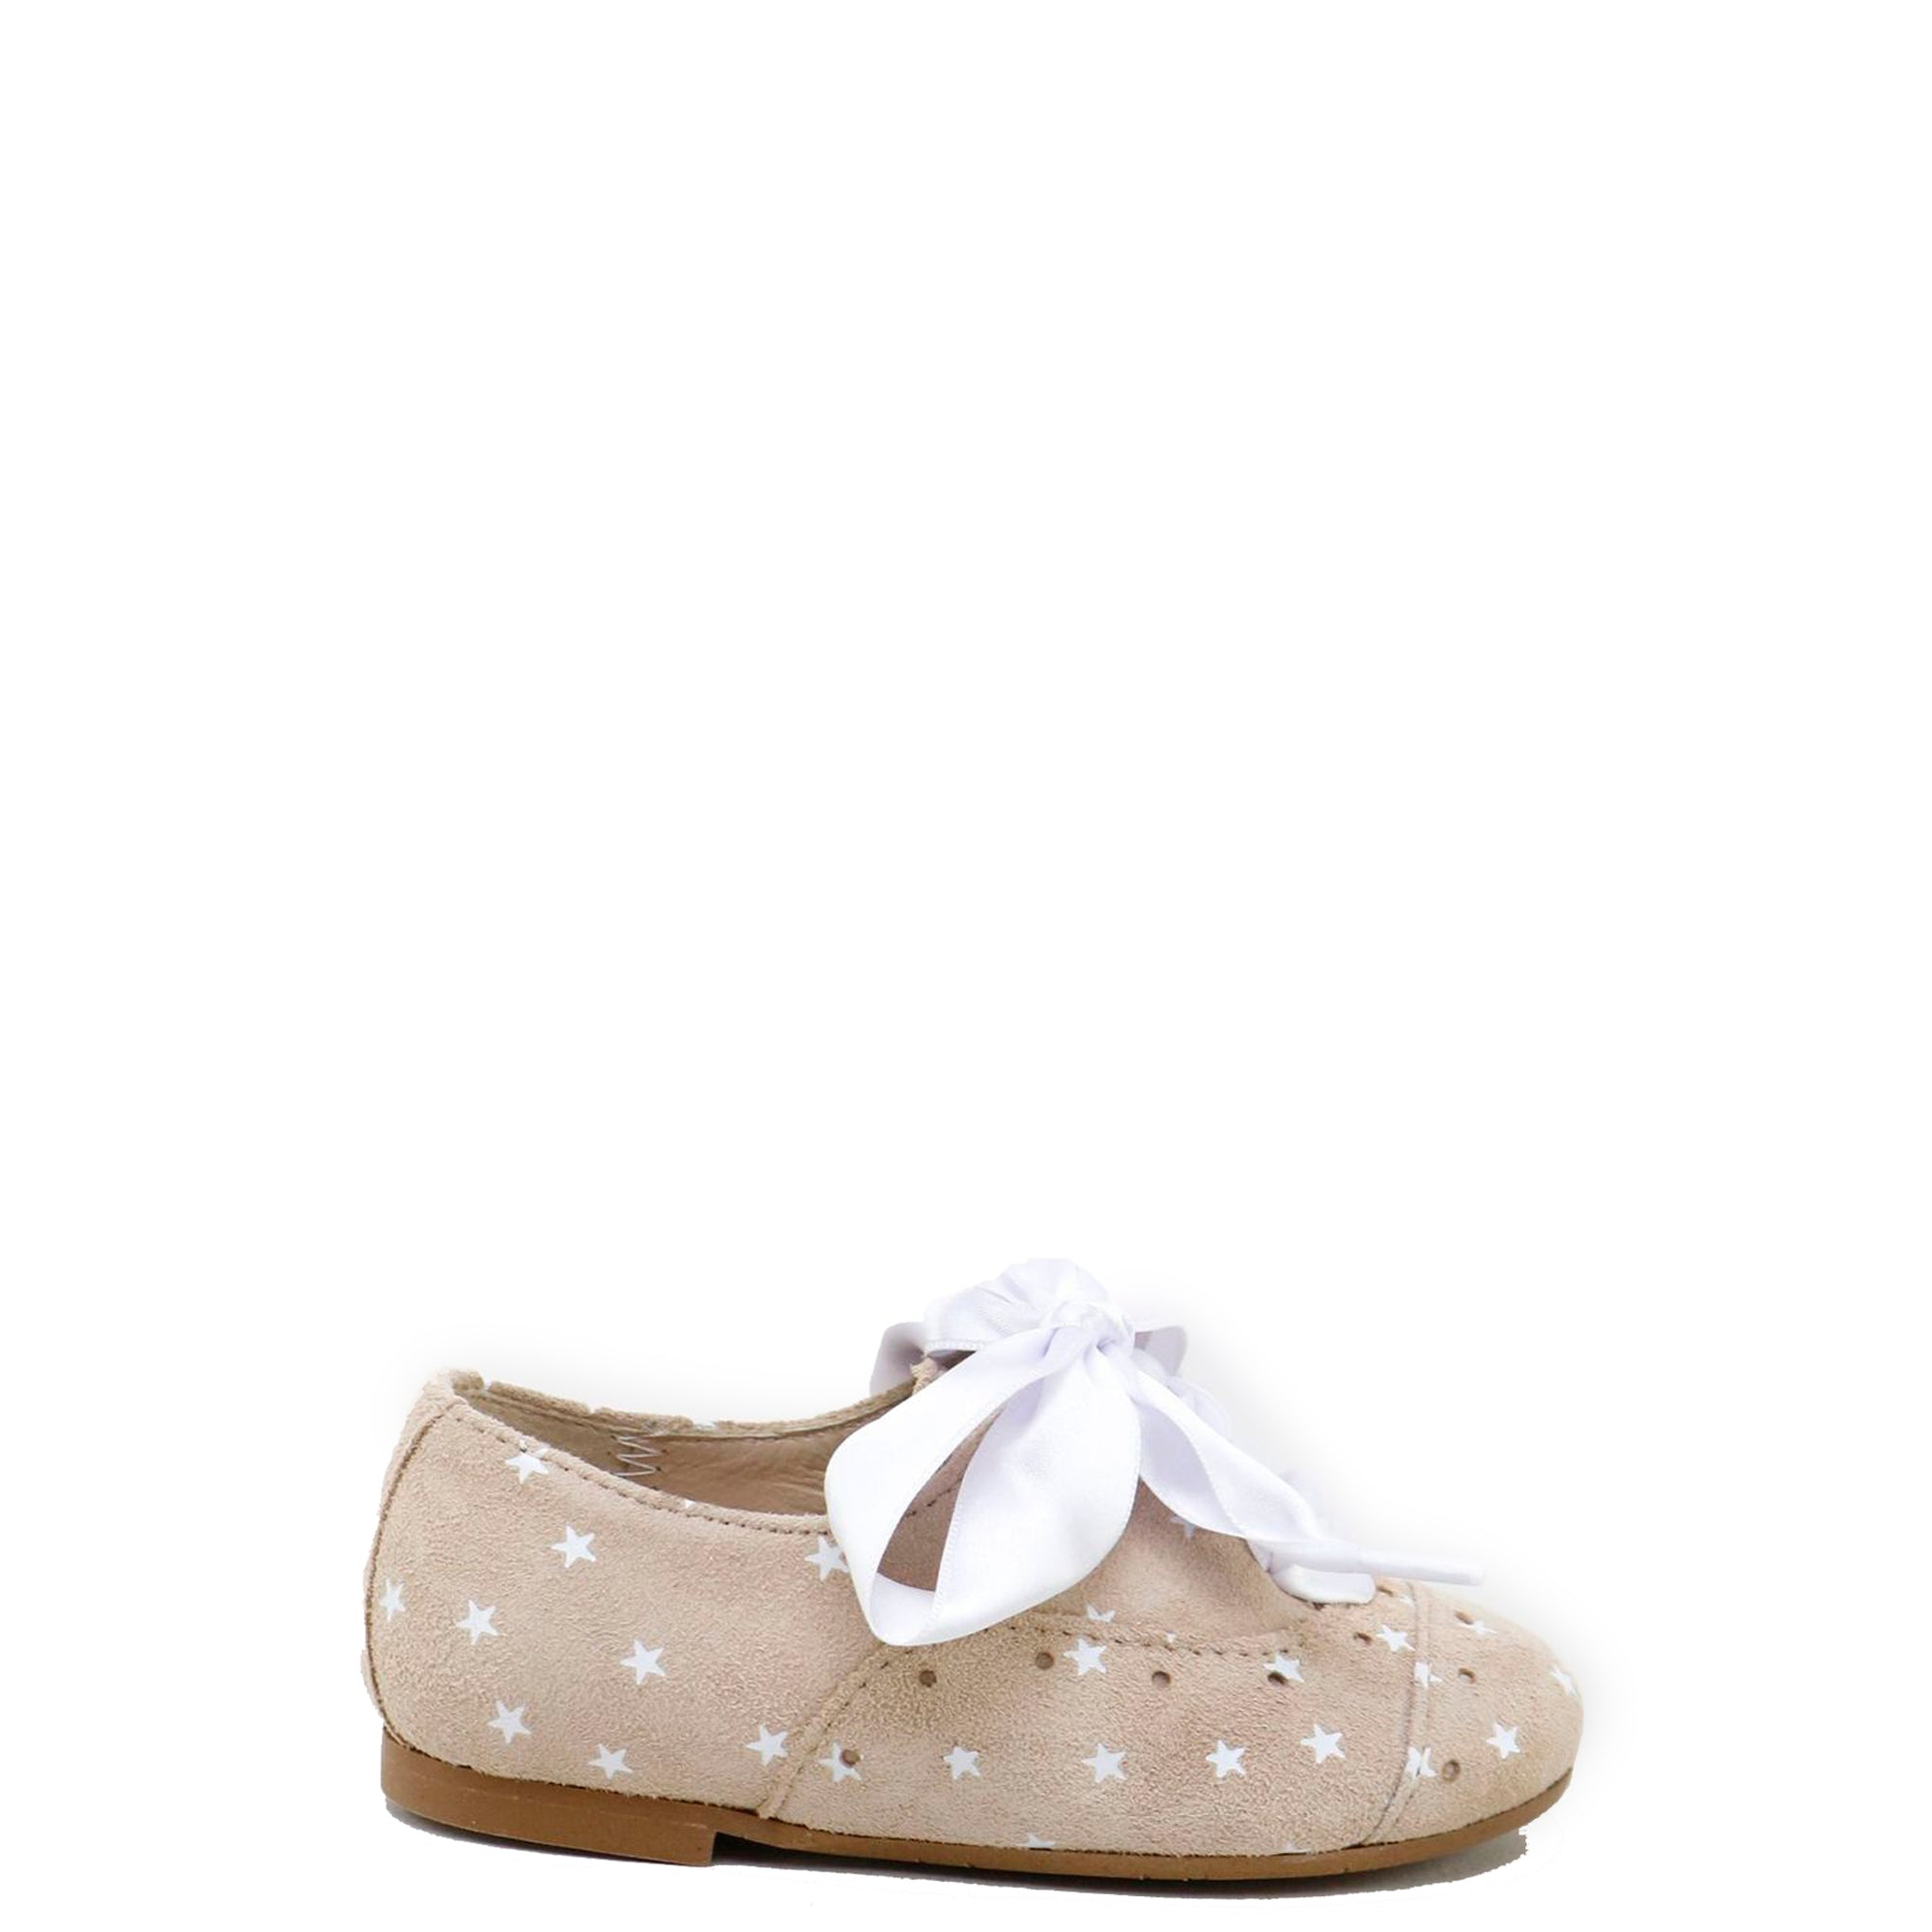 Papanatas Beige Star Lace Up Oxford-Tassel Children Shoes